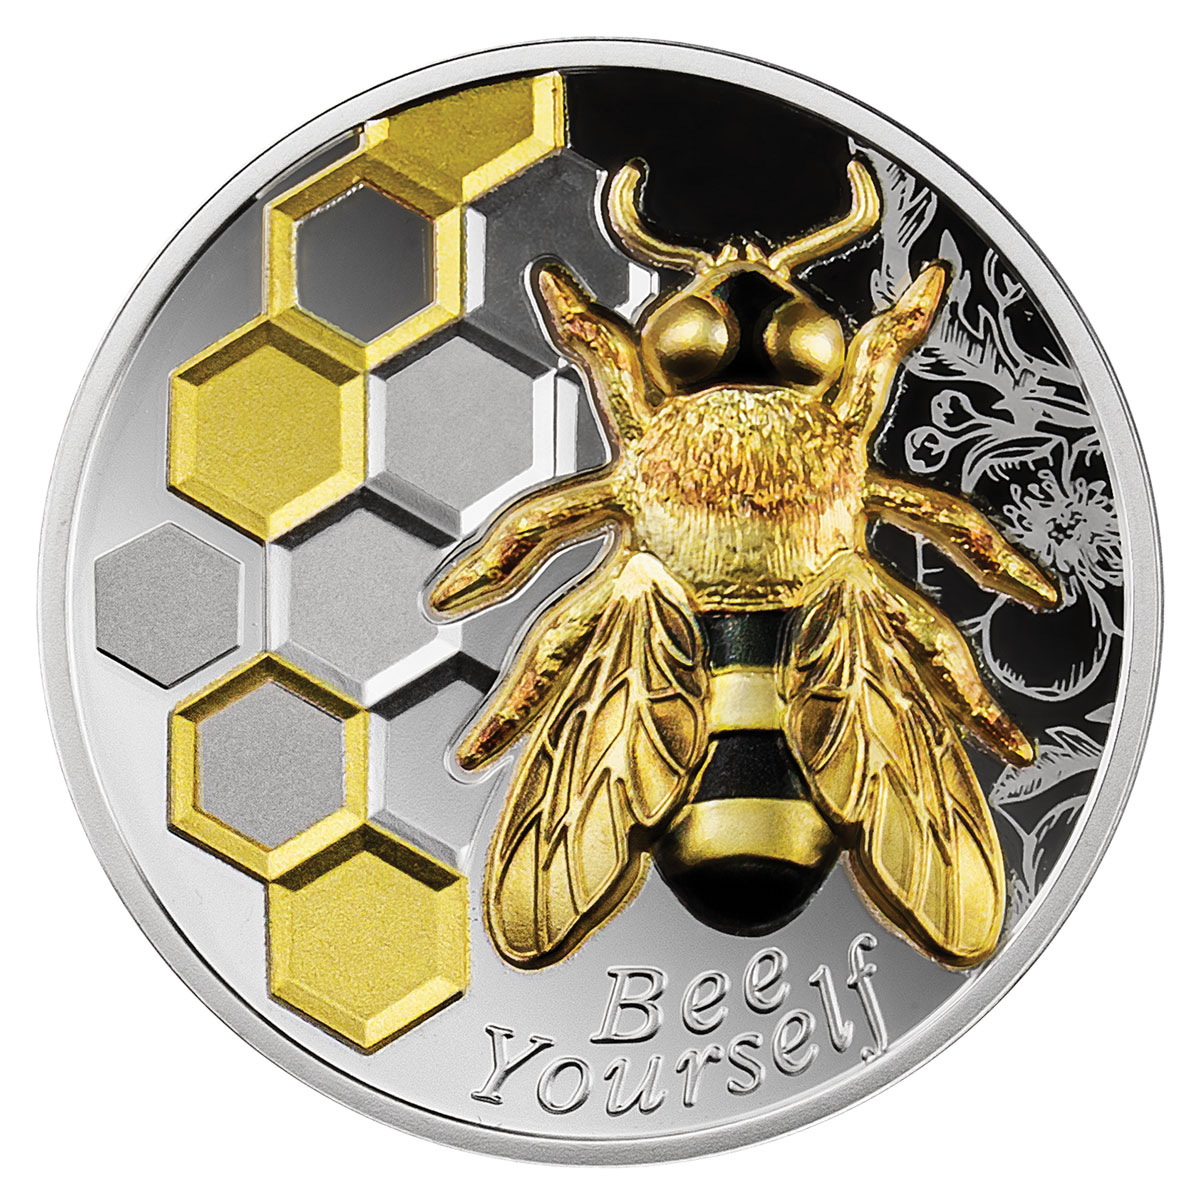 2021 Cameroon Always Bee Yourself Ultra High Relief 1 oz Silver Colorized Proof Fr1,000 Coin GEM Proof